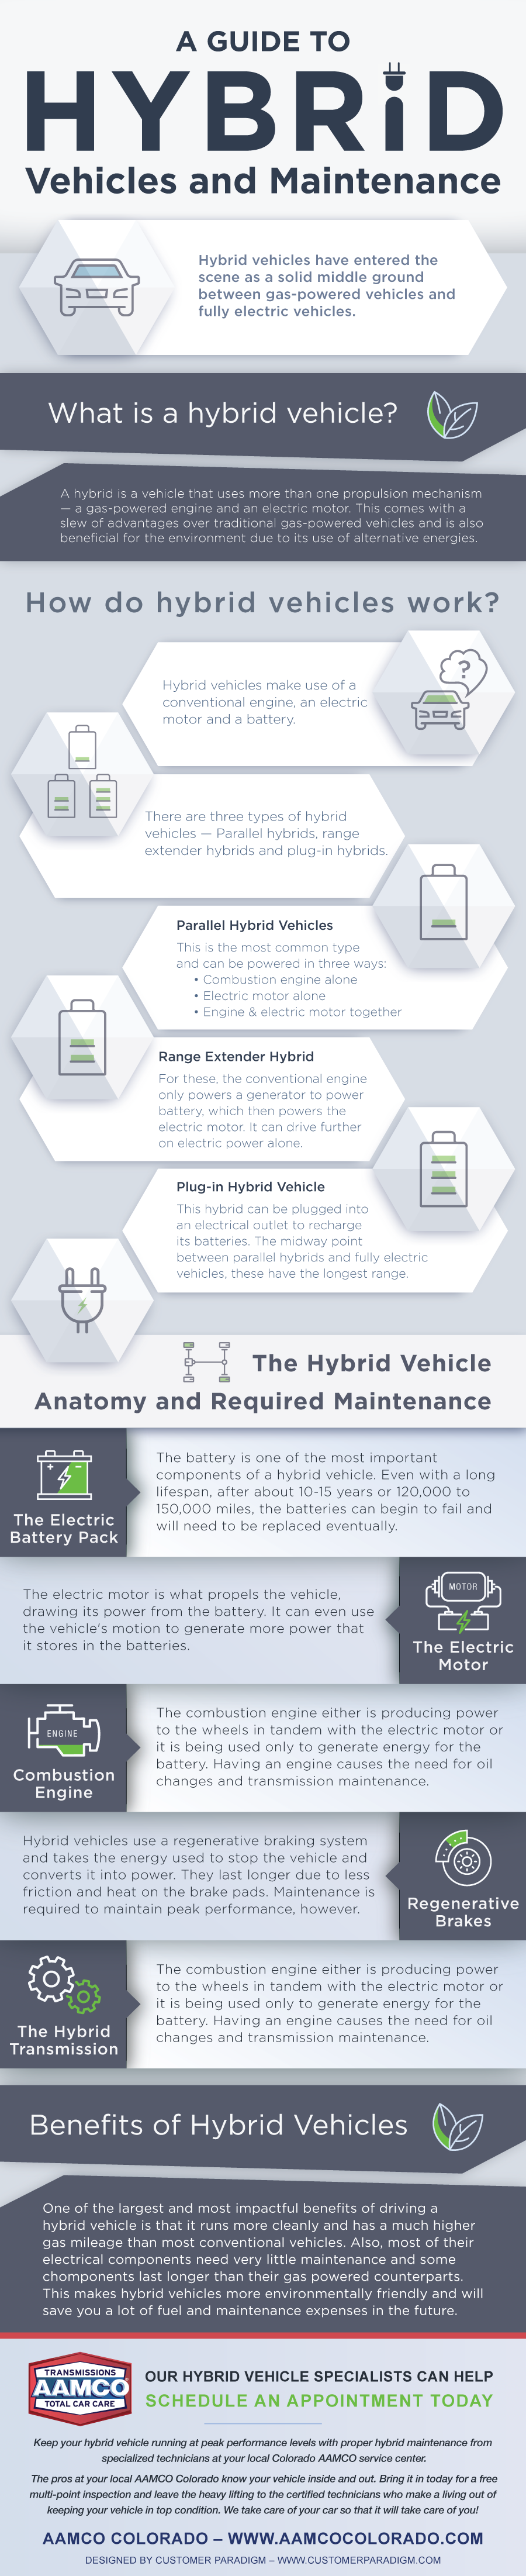 Infographic illustrating the types of engine oil and the codes - We recommend 5W30 for all year engine oil.